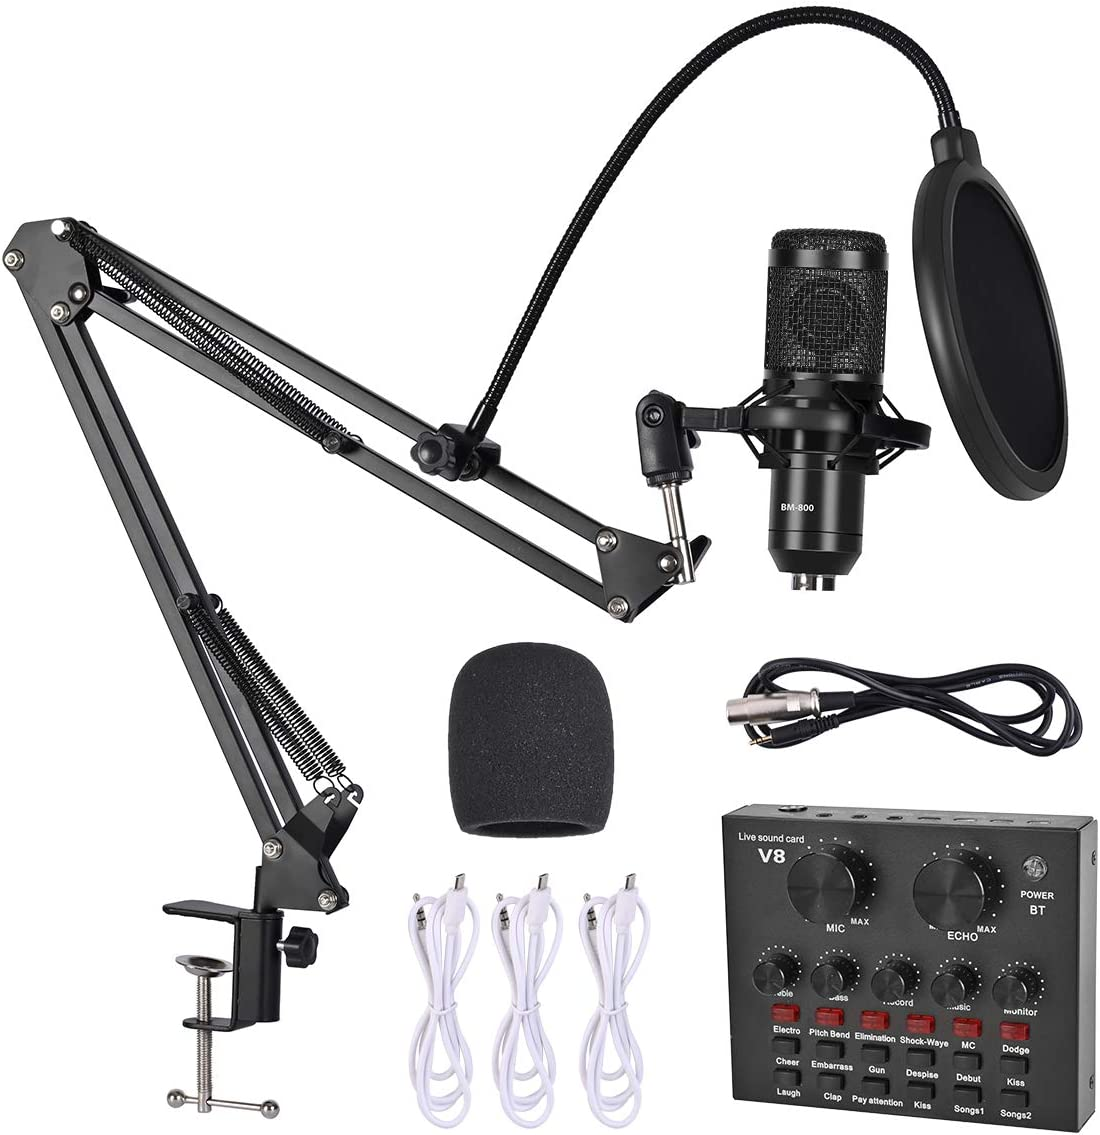 Condenser Microphone Bundle - Recording Home/Studio DJ Equipment with Live Sound Card, Adjustable Mic Suspension Scissor Arm, Metal Shock Mount and Double-Layer Pop Filter for Recording & Broadcasting